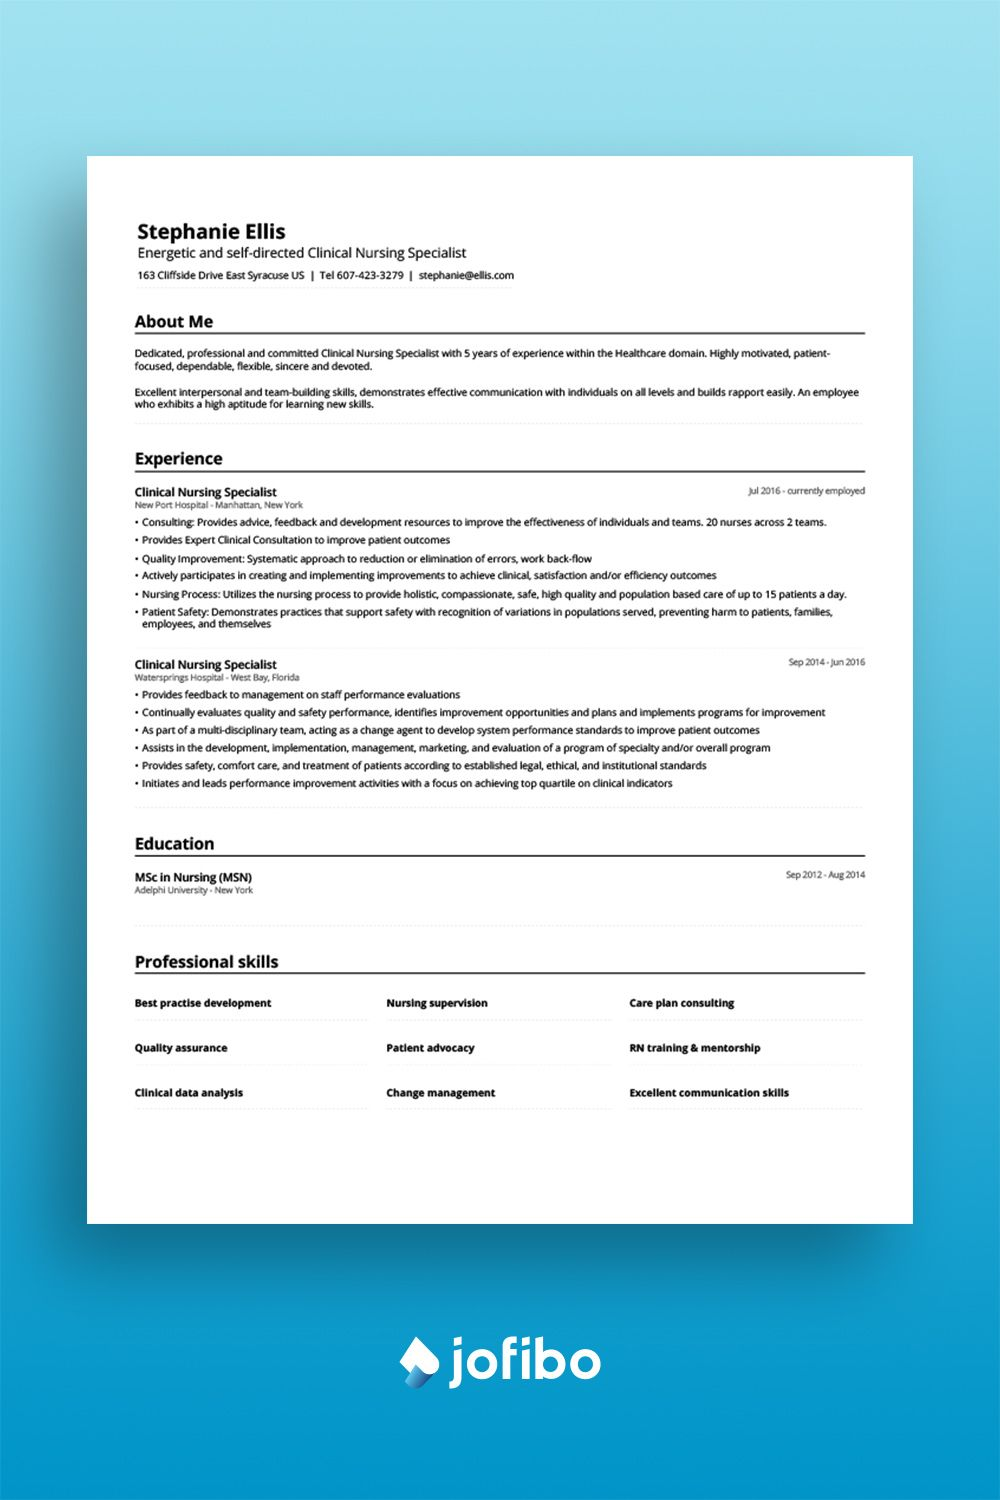 Traditional Resume Template in 2020 Resume templates, Cv